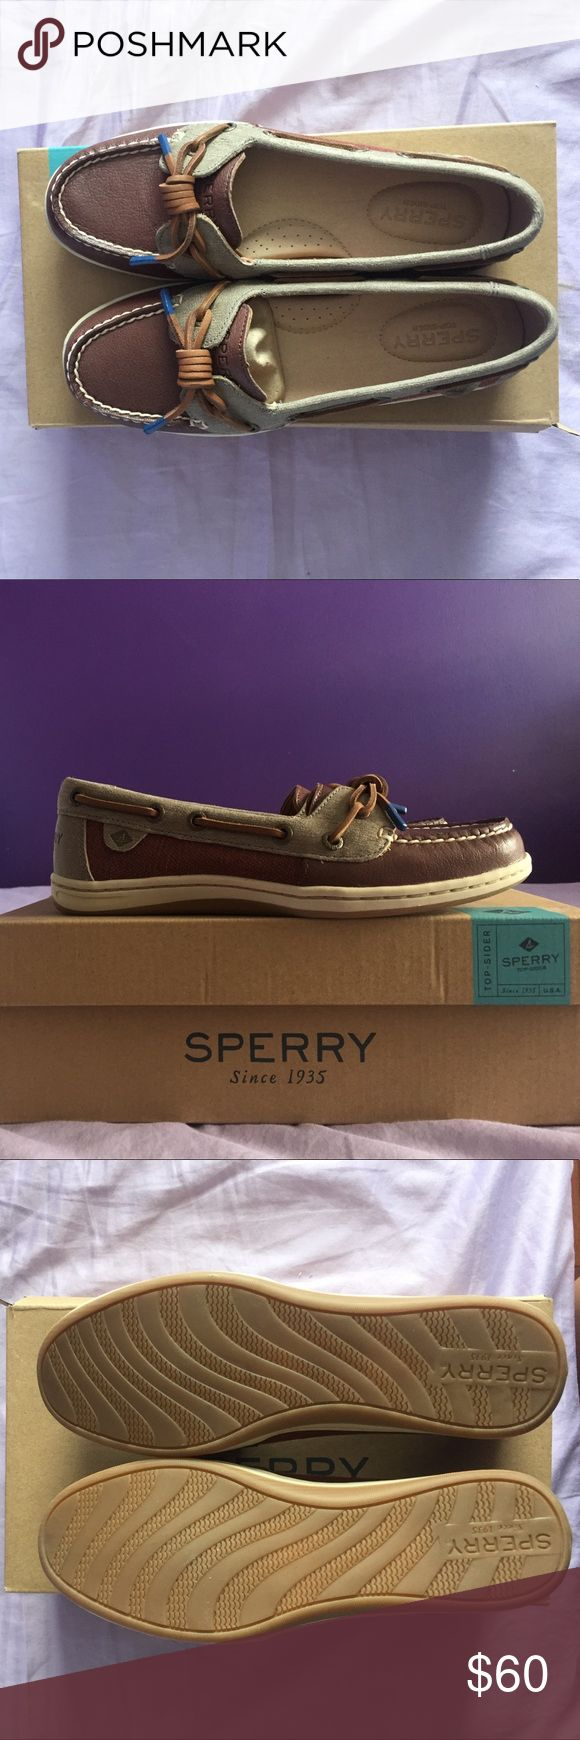 Unworn Barrelfish Rust Sperry Boat Shoes Size 6 Completely new and unworn women size 6 Barrelfish Rust Sperry Boat shoes. Fits true to size. Will come with the box. Sperry Top-Sider Shoes Flats & Loafers